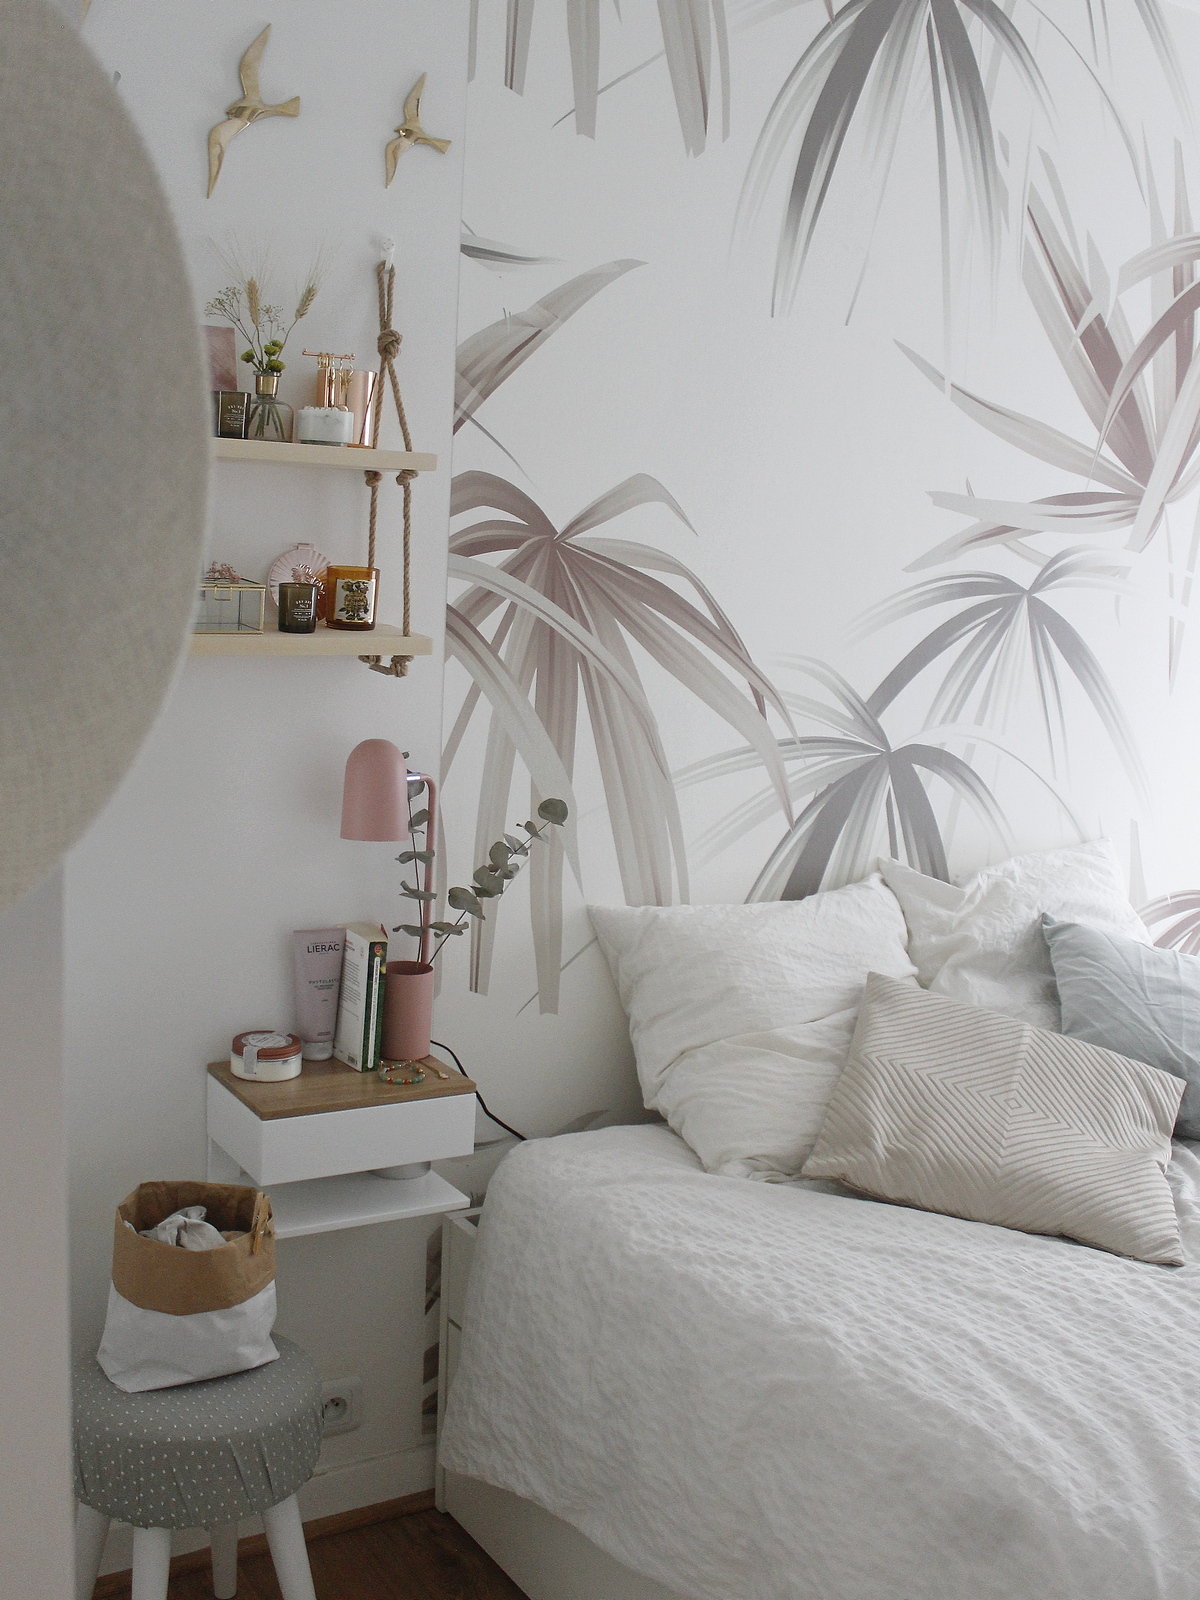 home tour; room tour; chambre; bedroom; blanc; tropical; deco; decoration d'interieur; room; vintage; campagne; shabby;